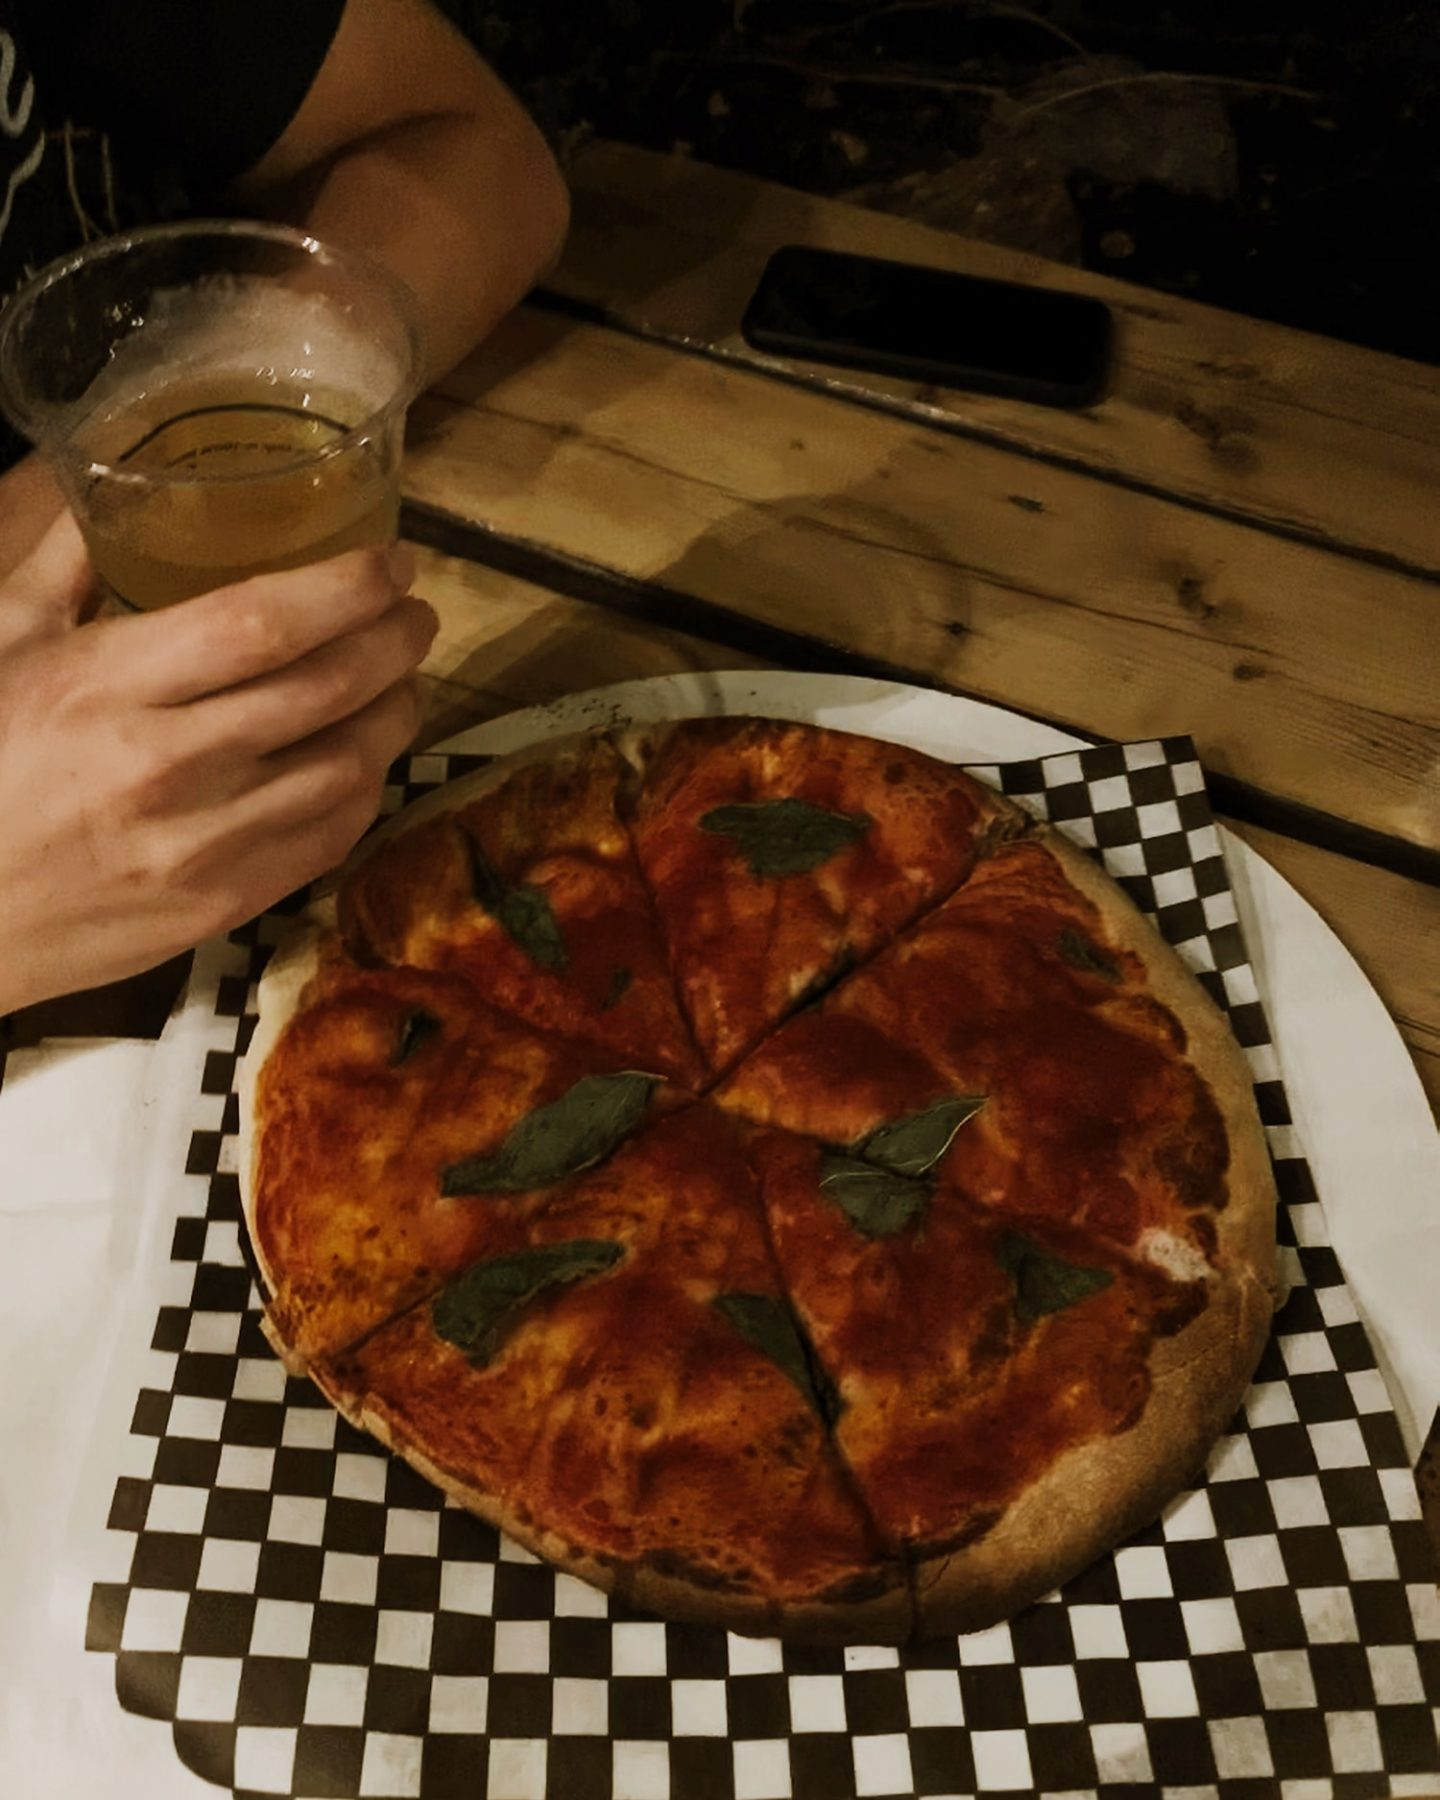 Pizza at 555 Brewing Co in Picton, Prince Edward County